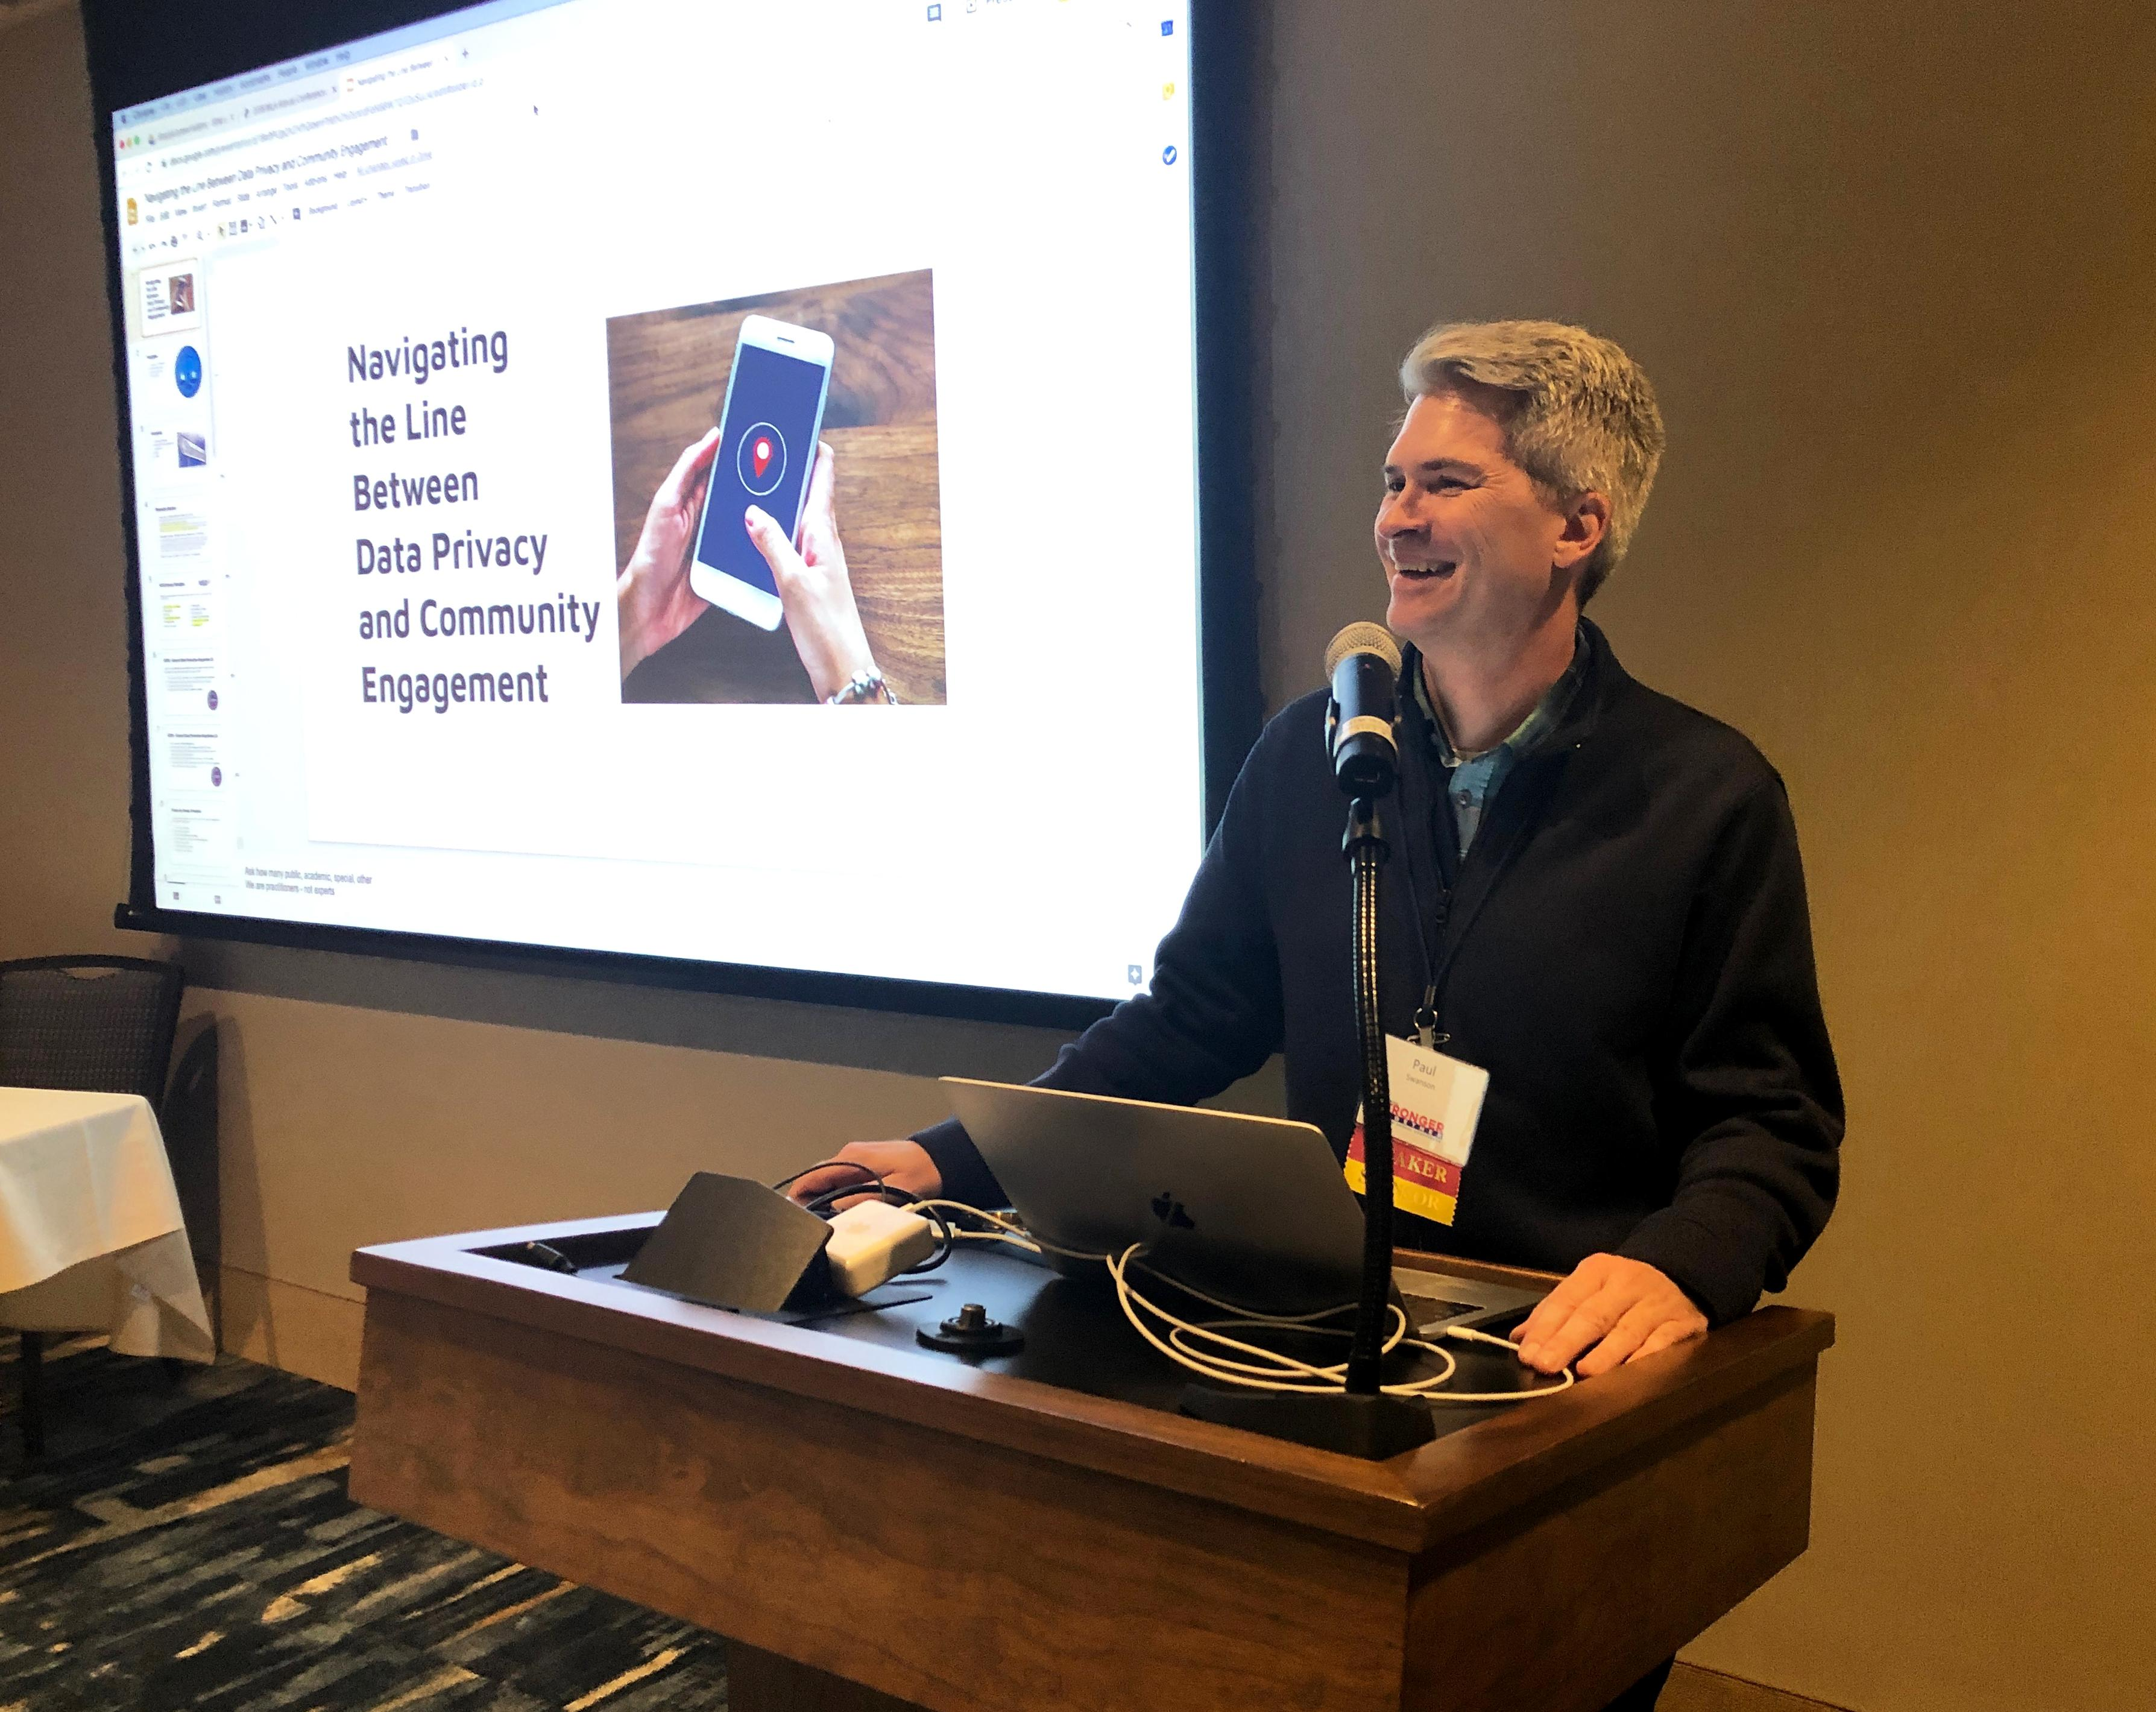 Paul Swanson at MLA 2019